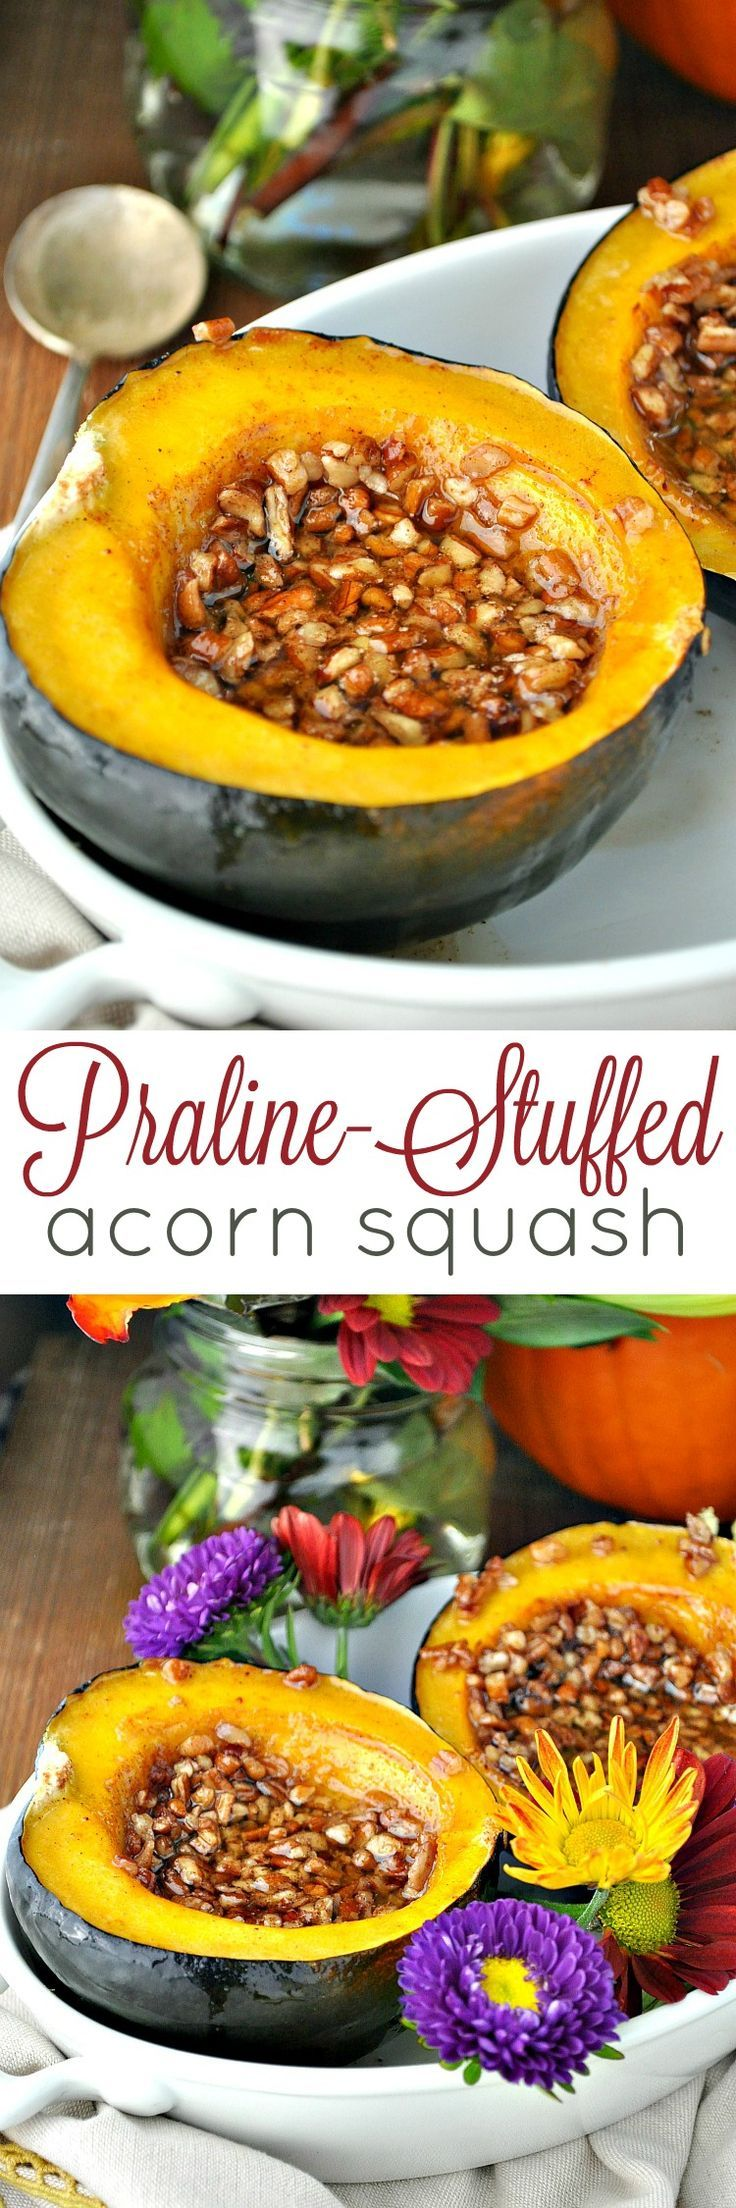 For a gorgeous, indulgent, and incredibly EASY Thanksgiving side dish, serve this PRALINE-STUFFED ACORN SQUASH!